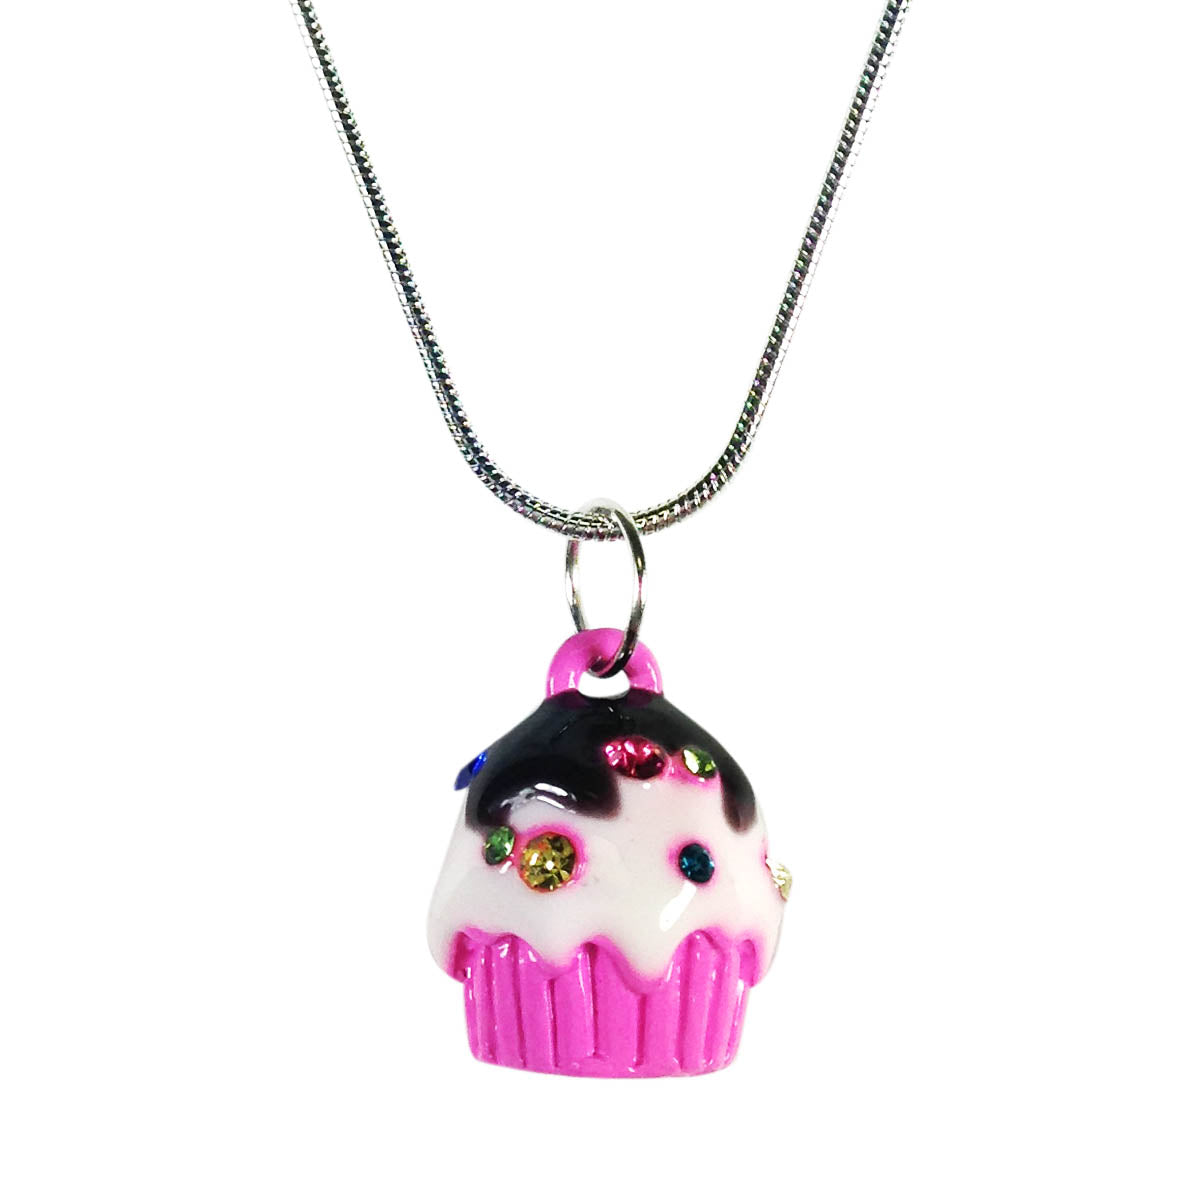 Wrapables Cupcake Pendant Necklace with Multi-Color Crystal Sprinkles